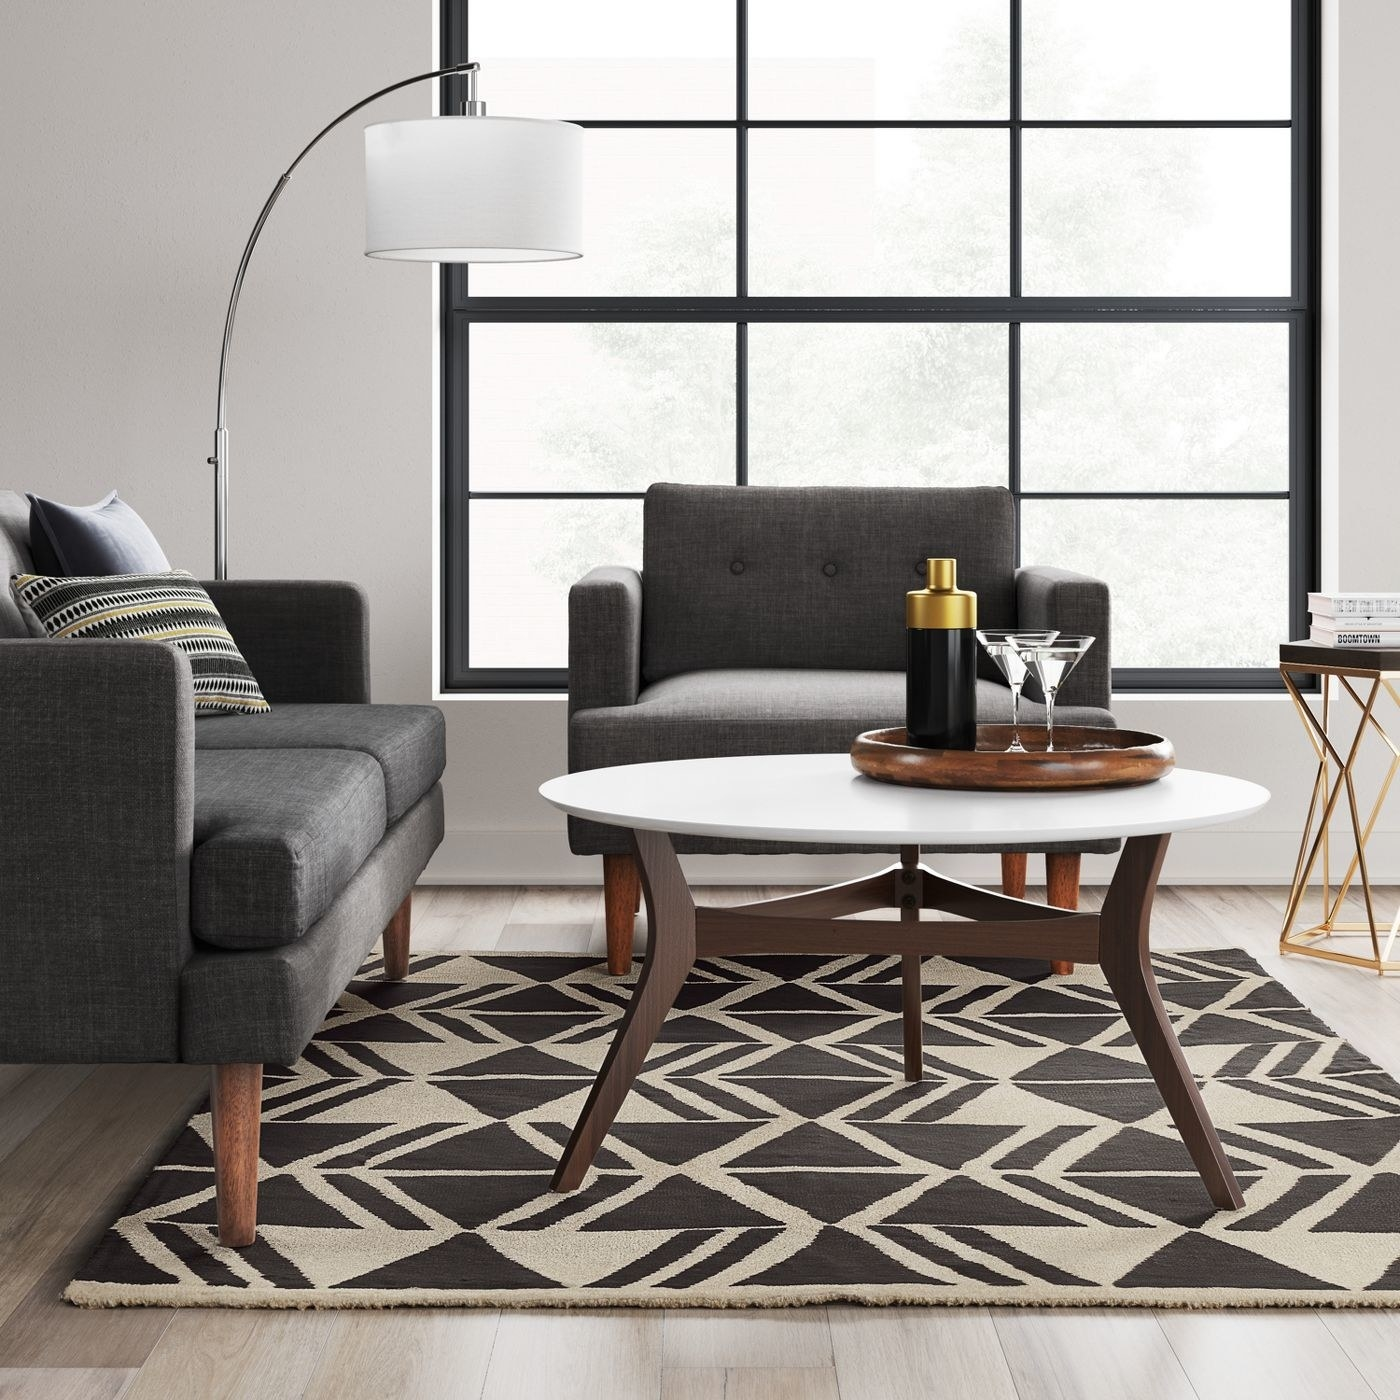 The area rug in black showcased in a modern living room